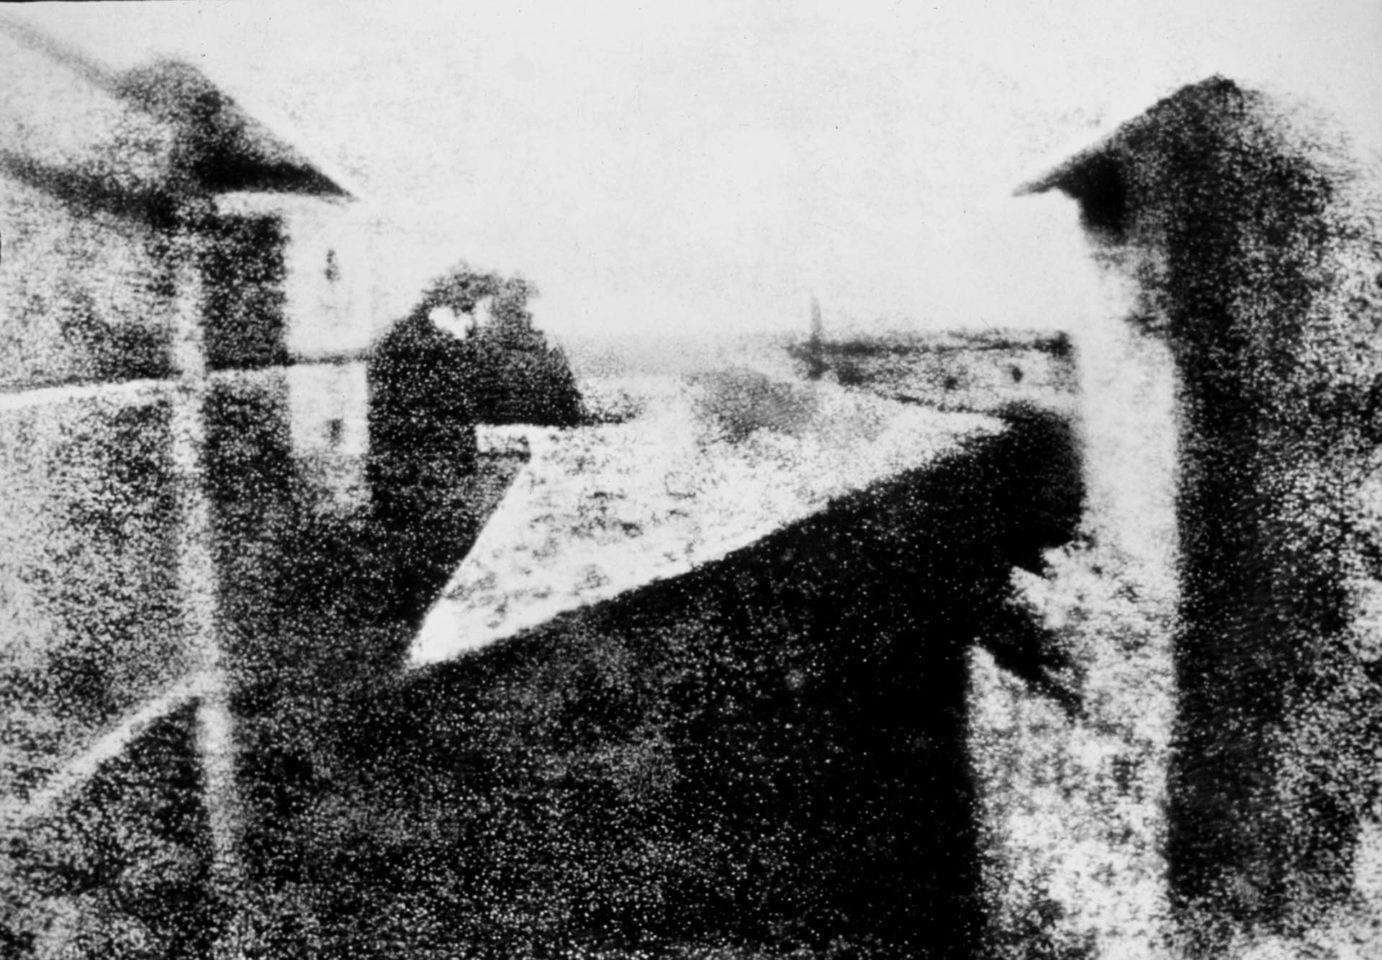 View from the Window at Le Gras | Joseph Nicéphore Niépce, 1826 ca.